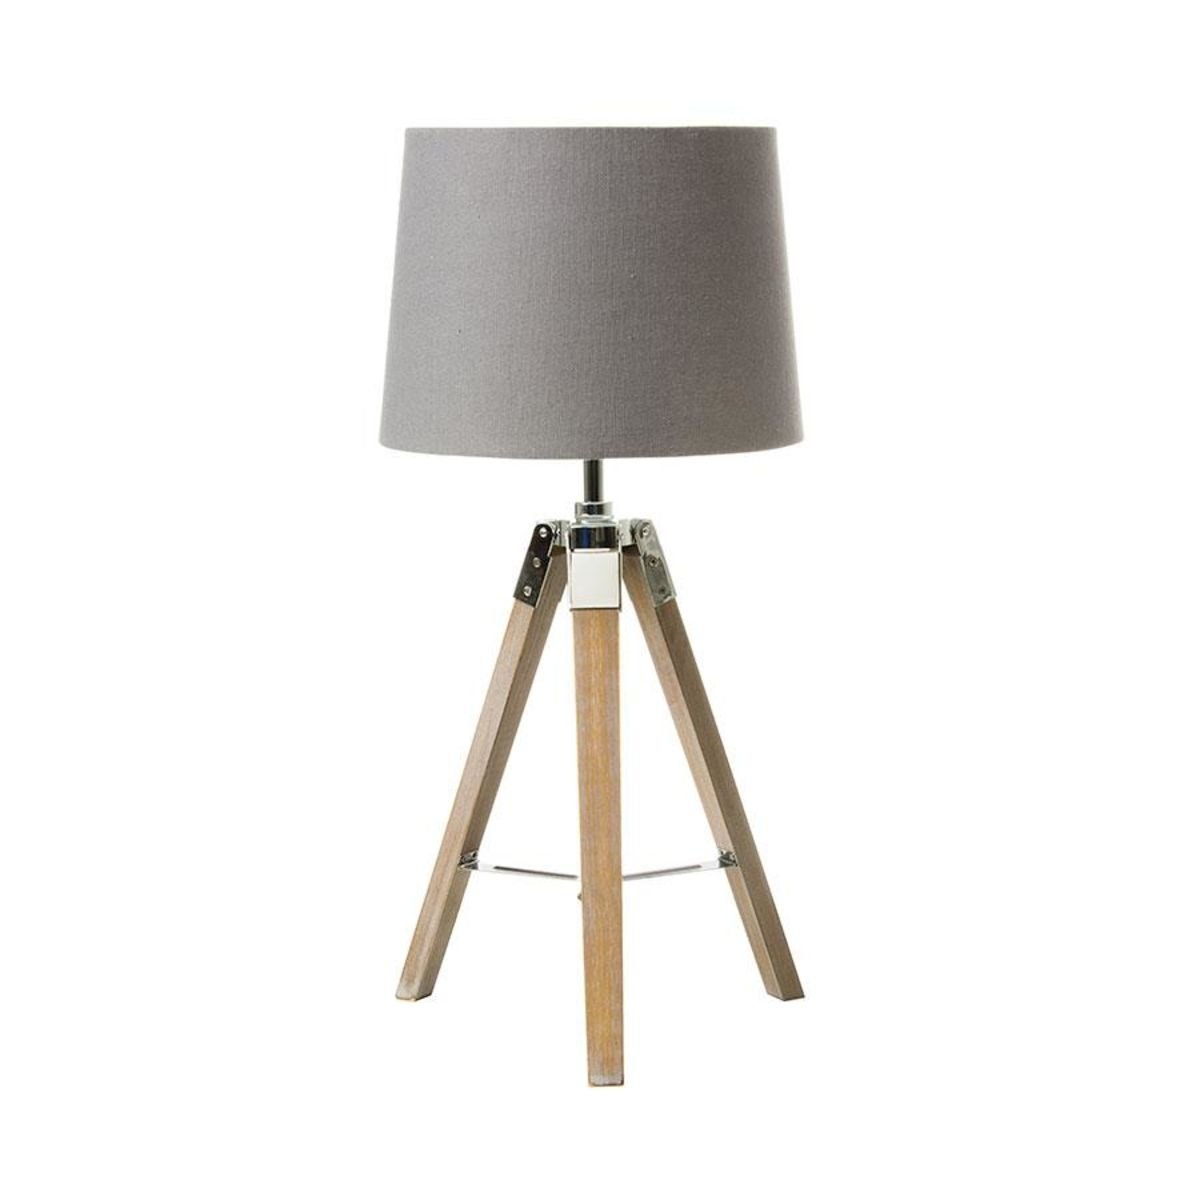 Tripod Table Lamp Kmart Lamp Tripod Table Lamp Tripod Table